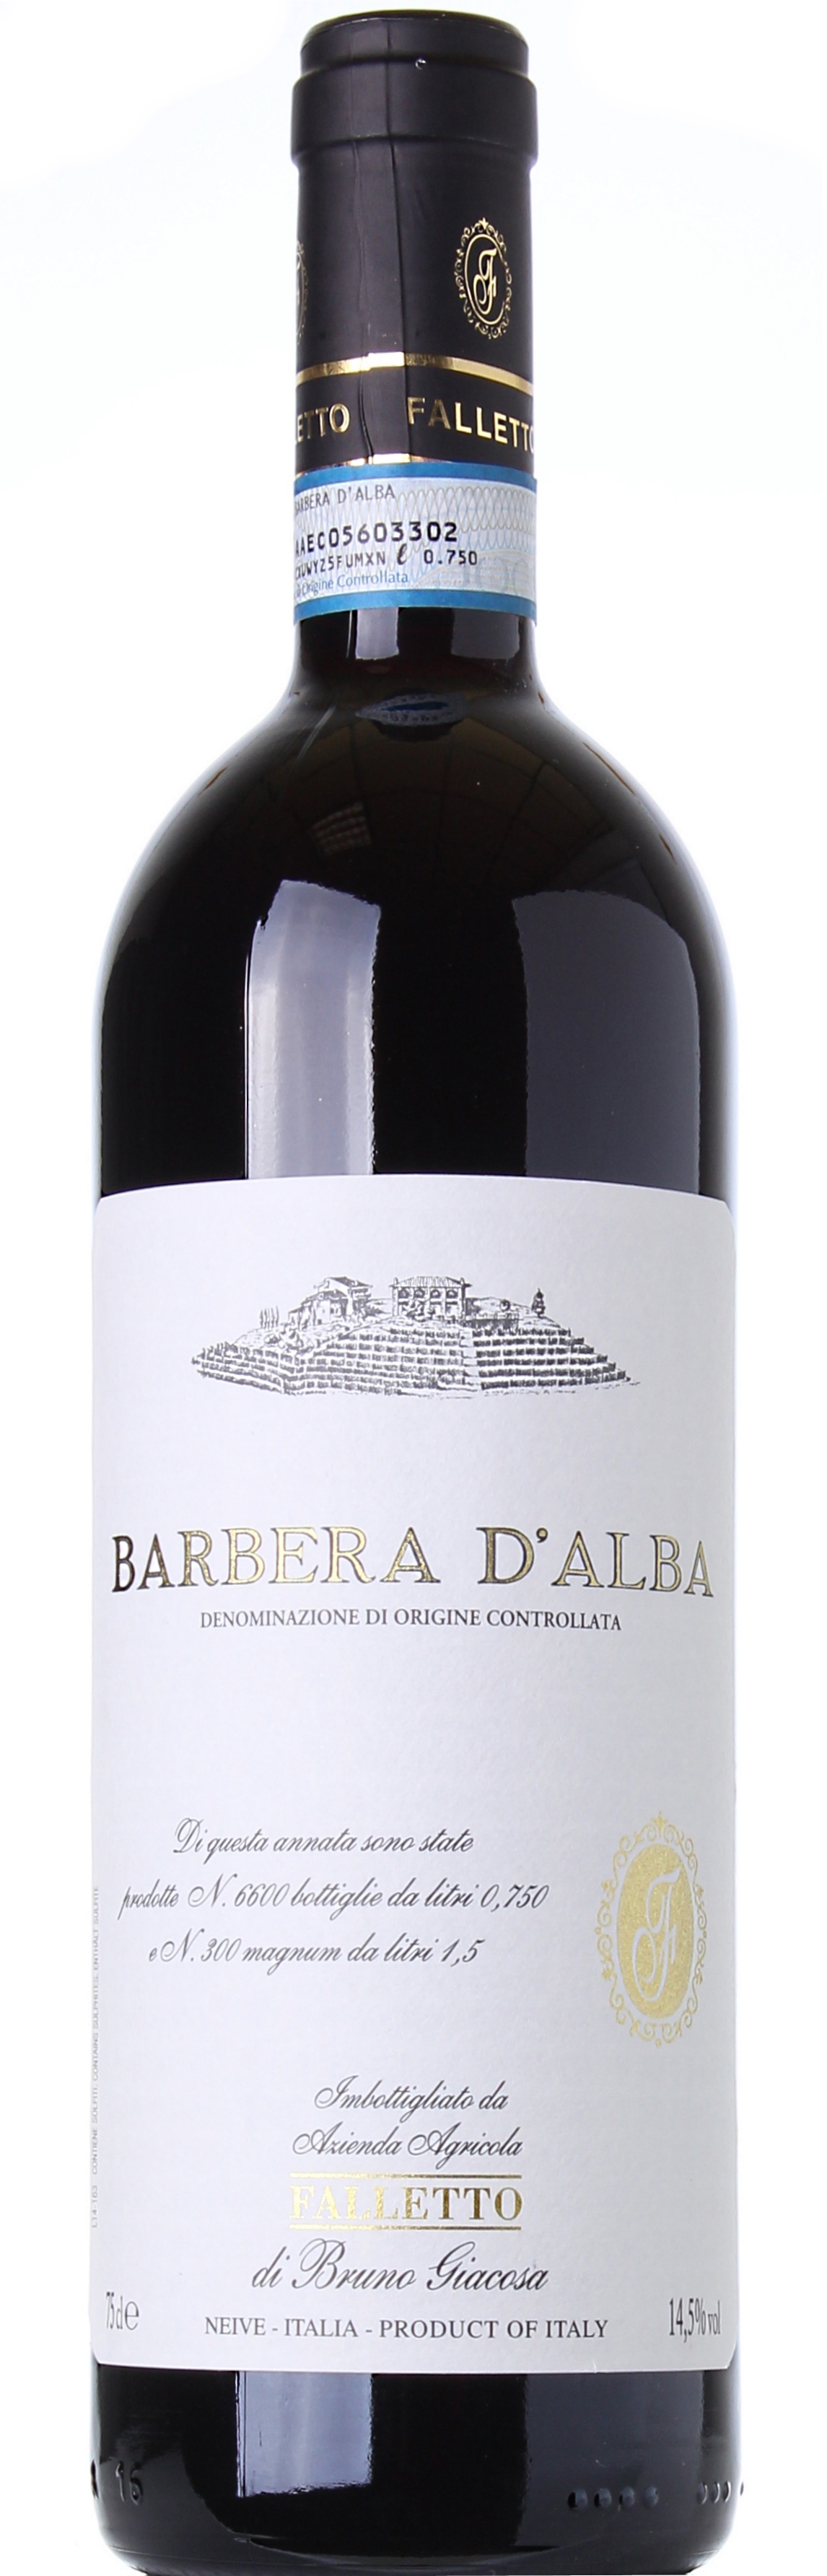 BRUNO GIACOSA BARBERA D'ALBA FALLETTO 2012